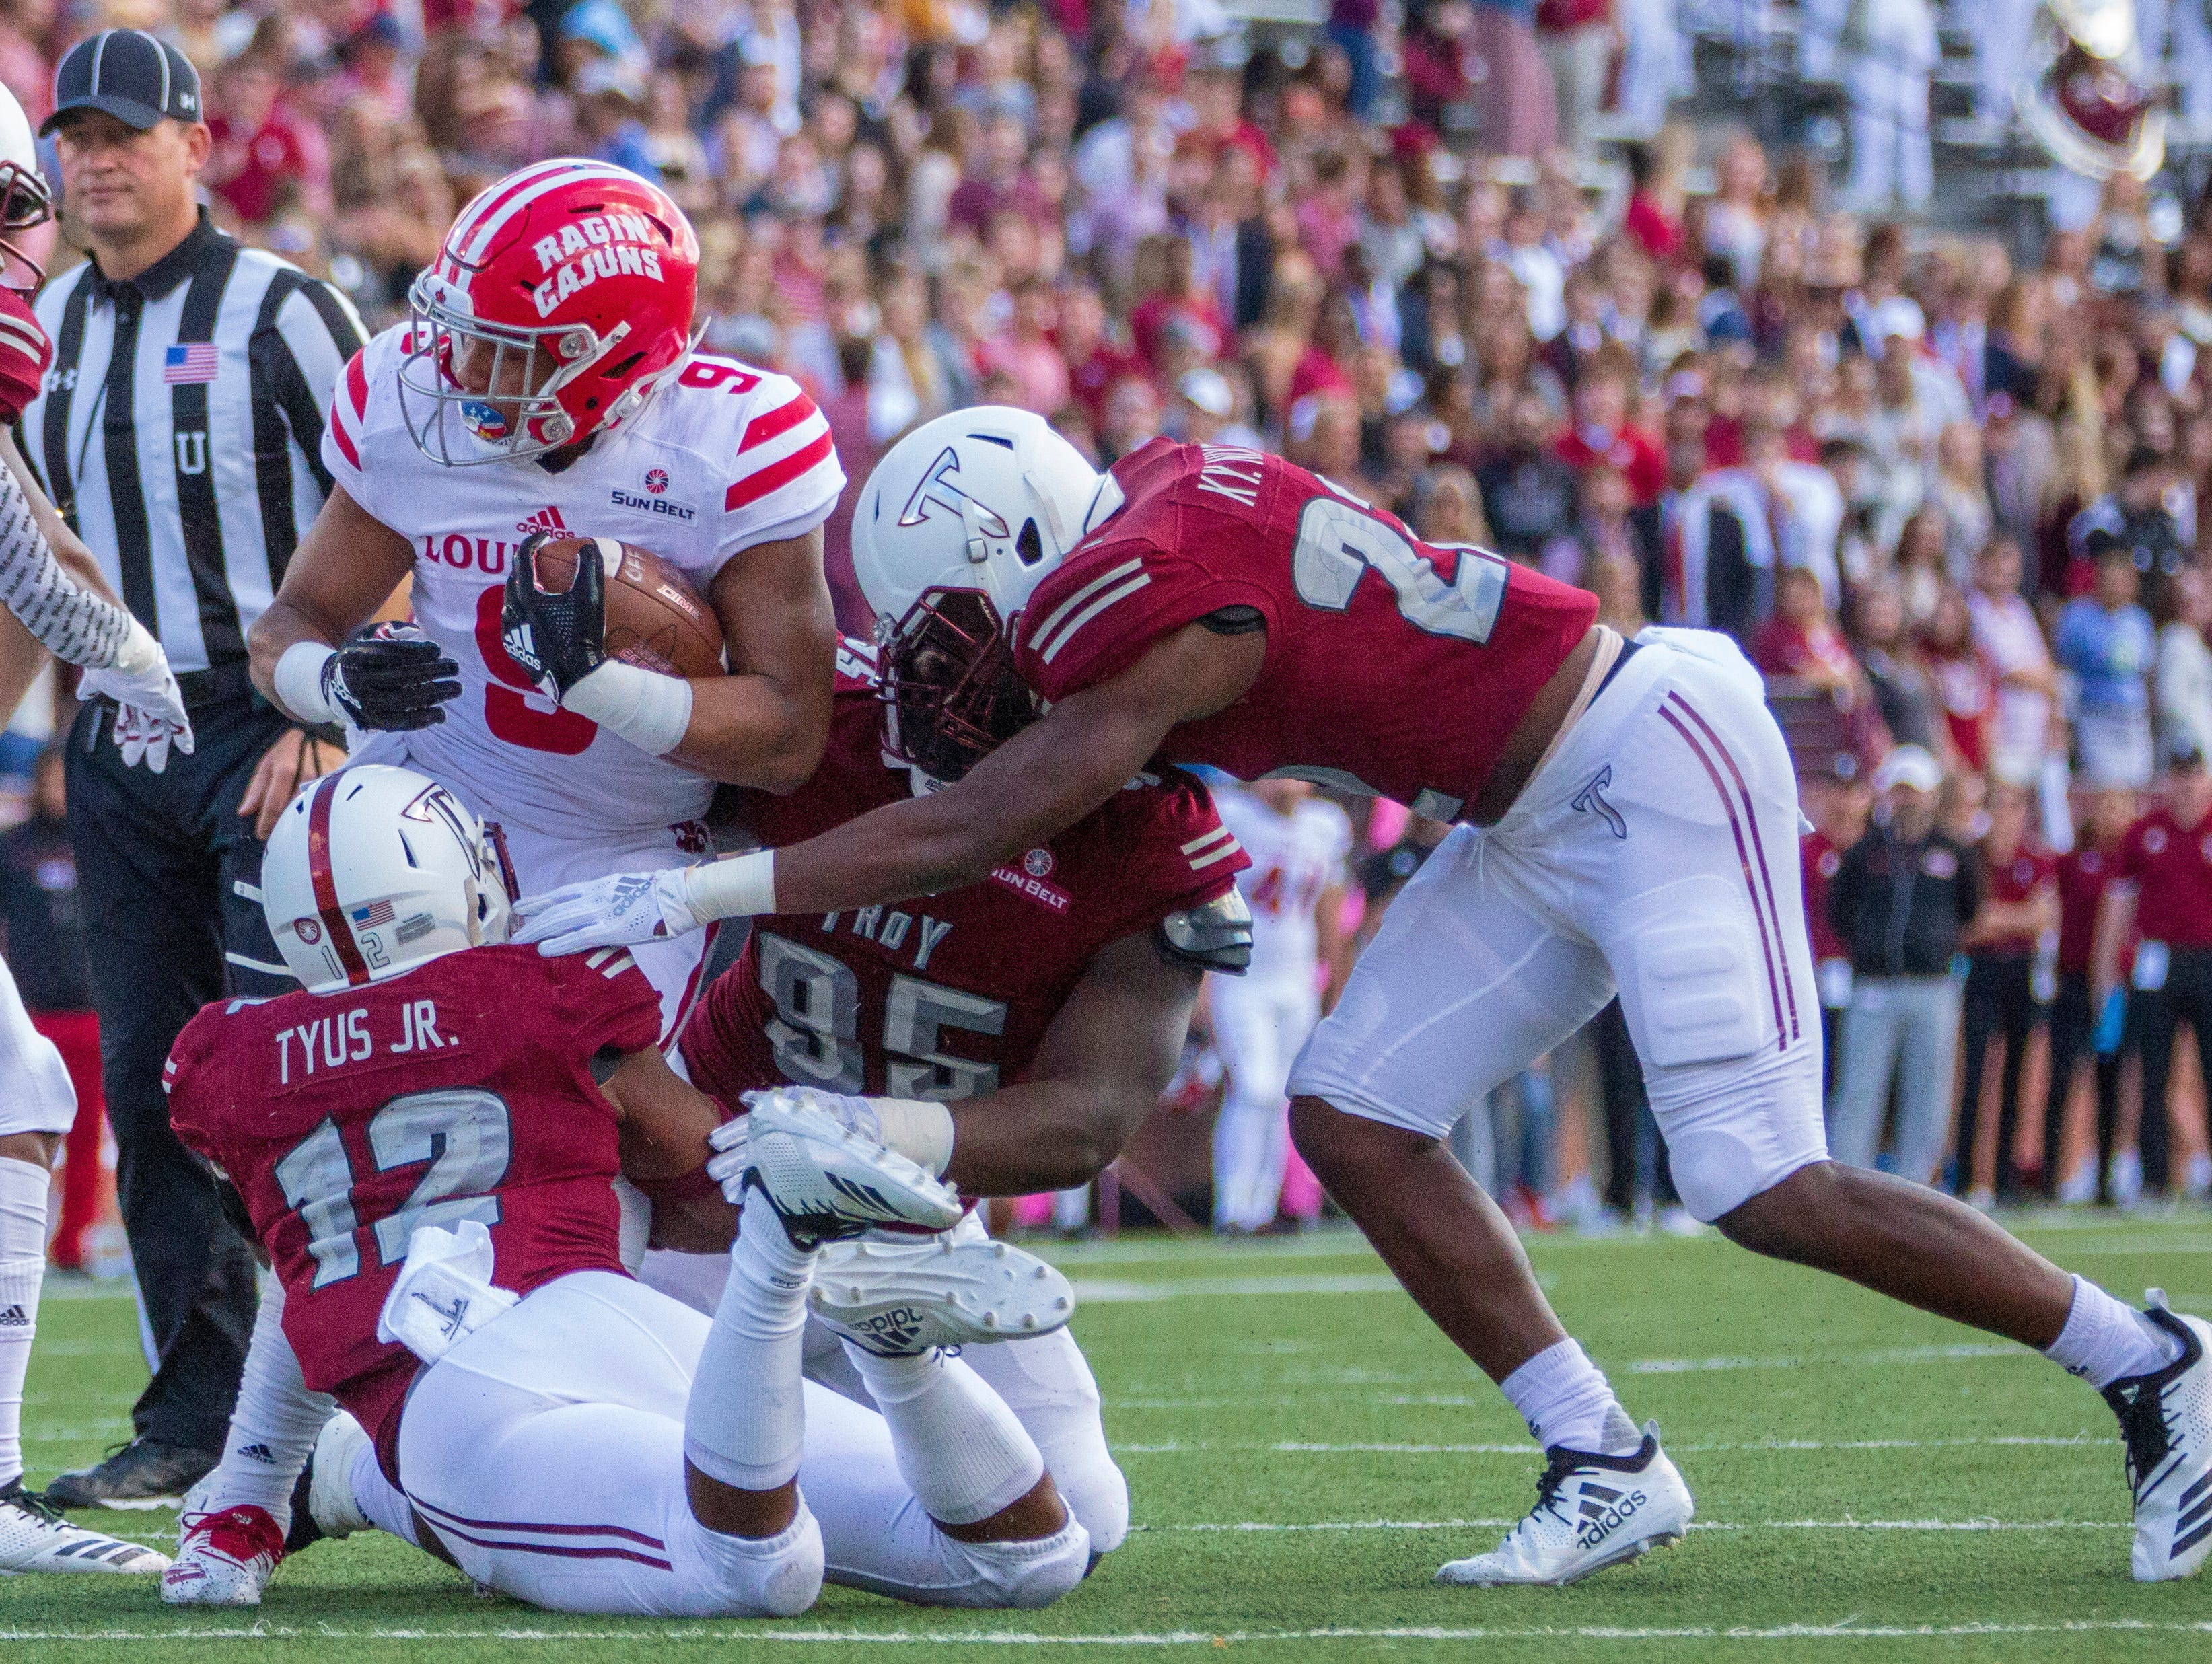 The Ragin' Cajuns' Trey Ragas runs into Troy's Melvin Tyus and Will Choloh, Jr. during the first half.